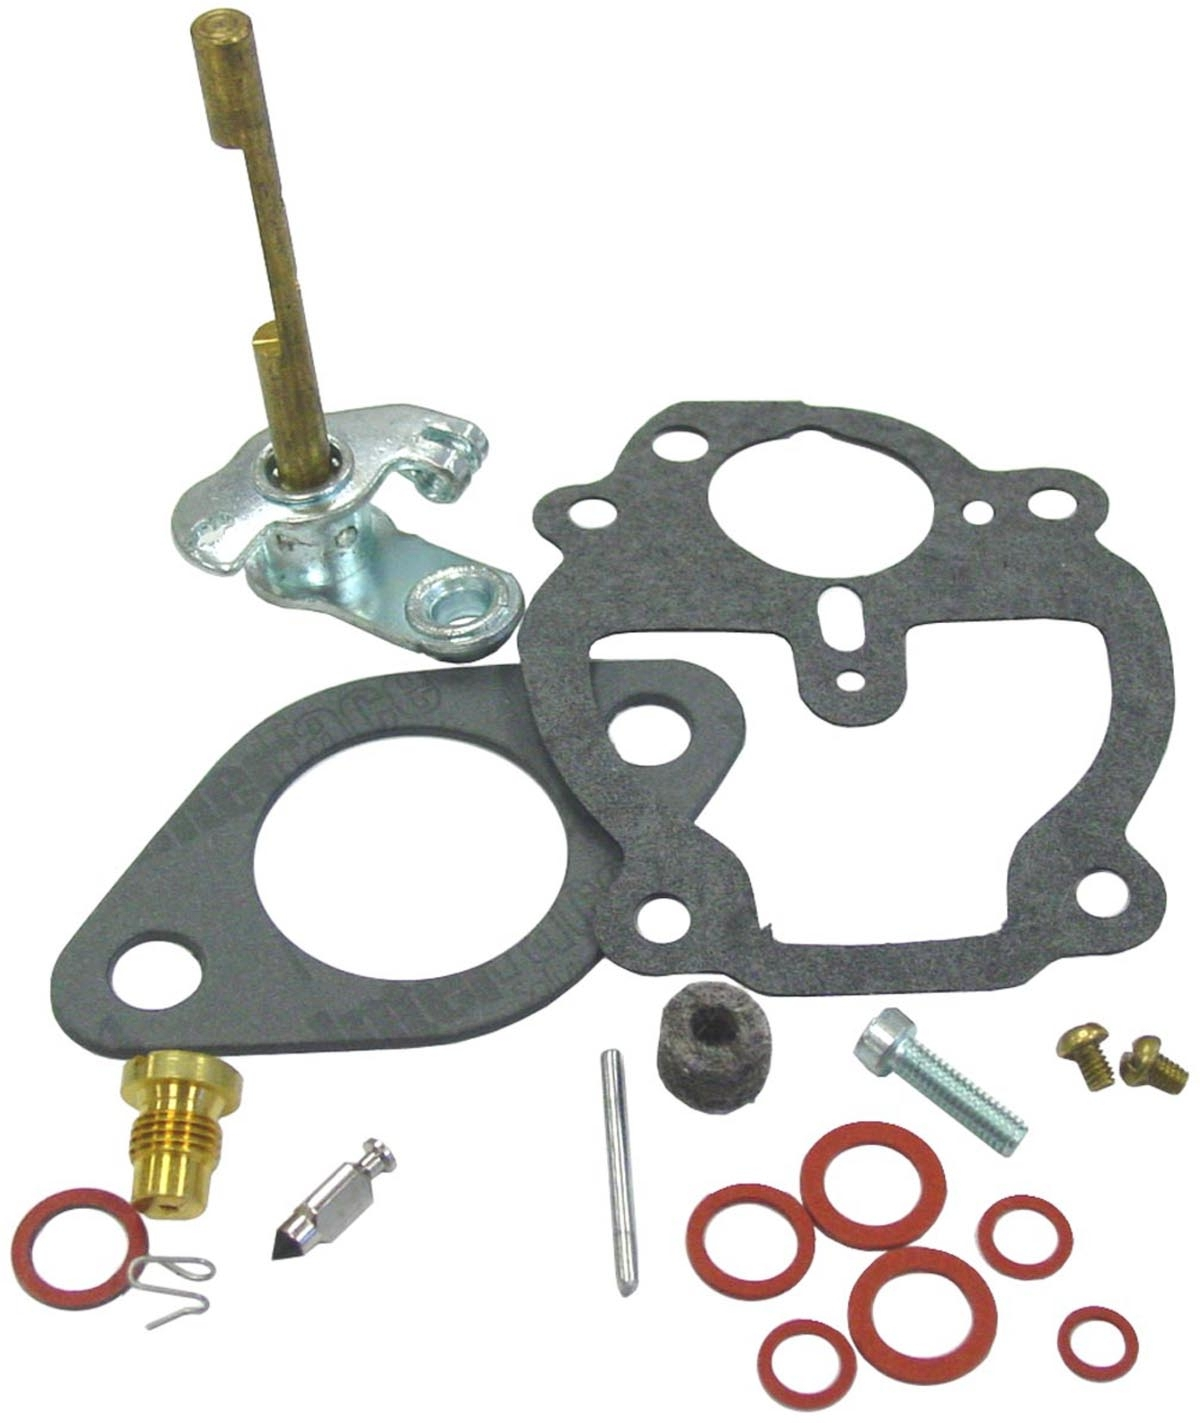 Tractor Carburetor Rebuilding : Basic carburetor repair kit zenith carbs and kits